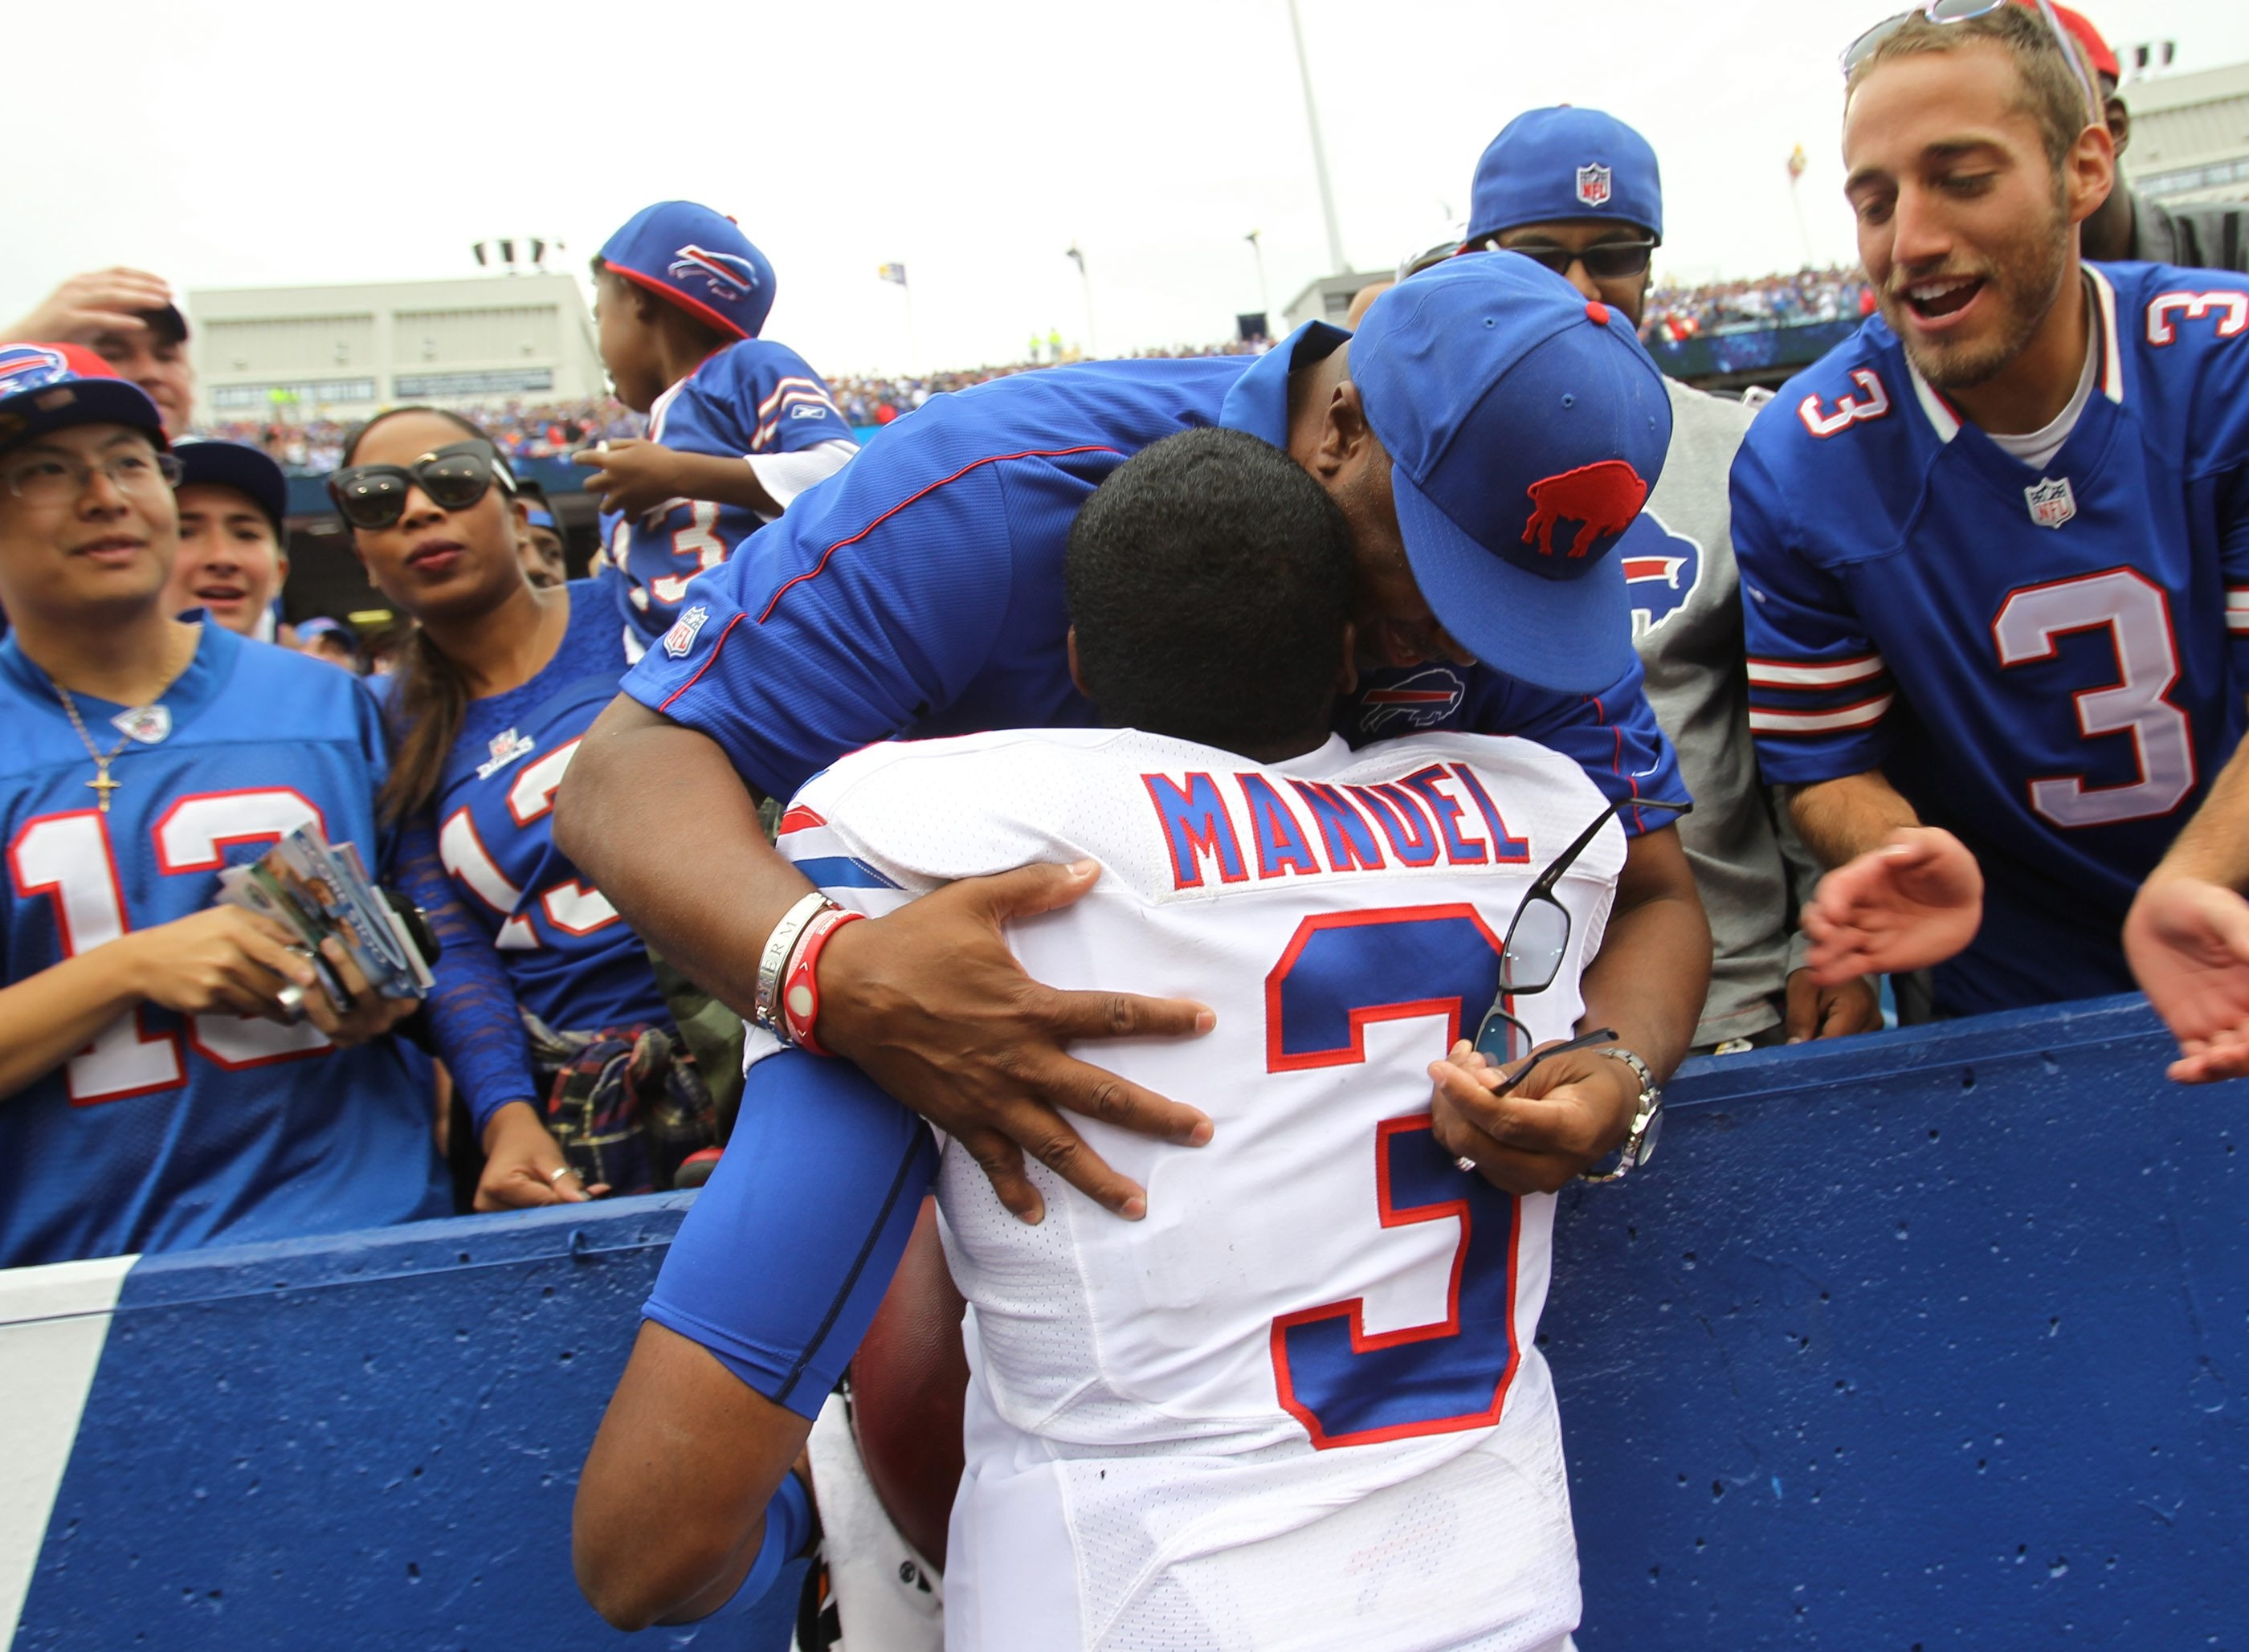 Buffalo Bills quarterback EJ Manuel (3) gives hugs to his dad, Erik Sr., after beating the Carolina Panthers at the Ralph Wilson Stadium on Sunday.  {Photo by James P. McCoy / Buffalo News}